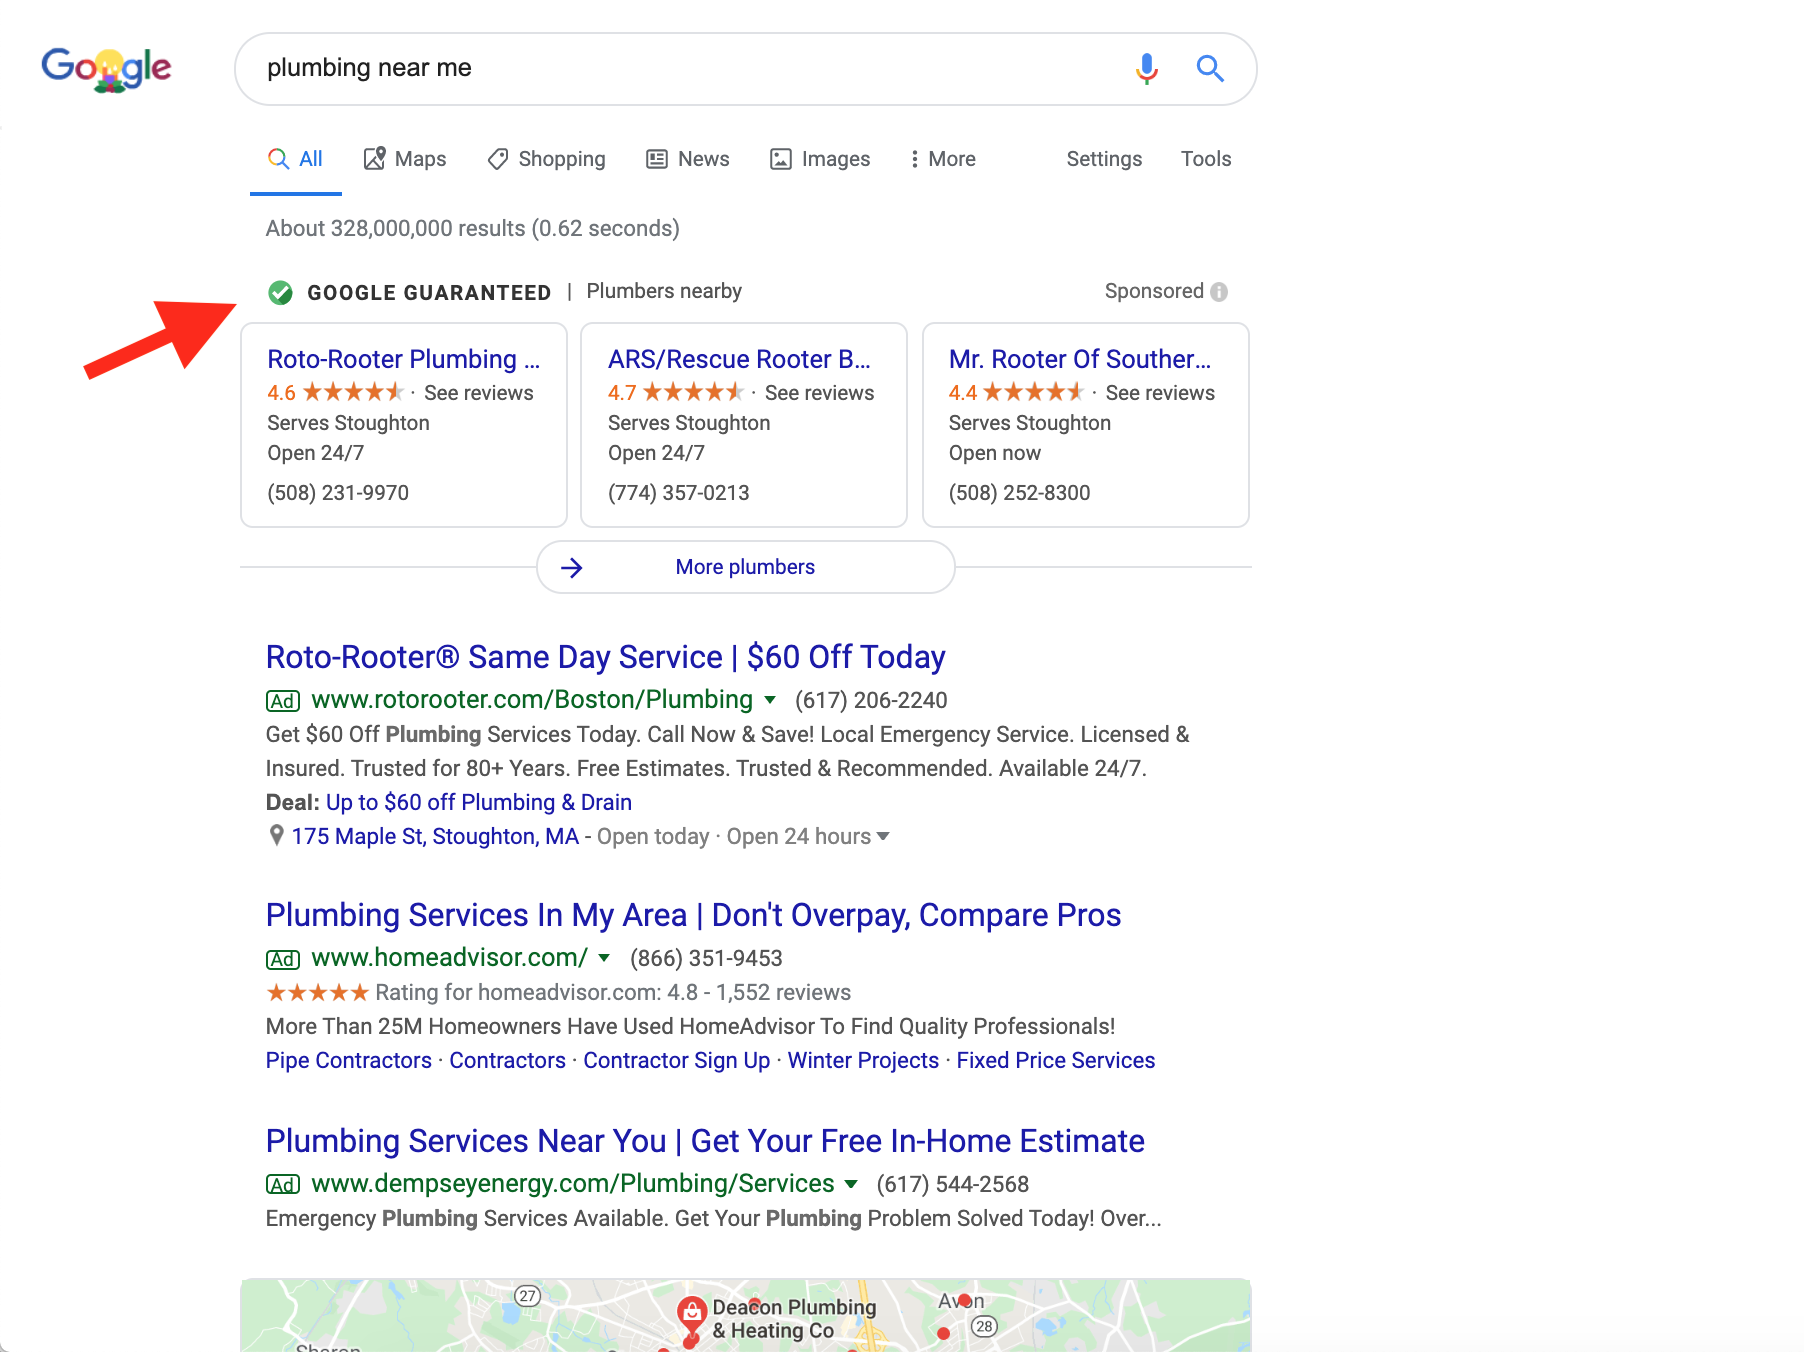 how to get to the top of google both types of ads